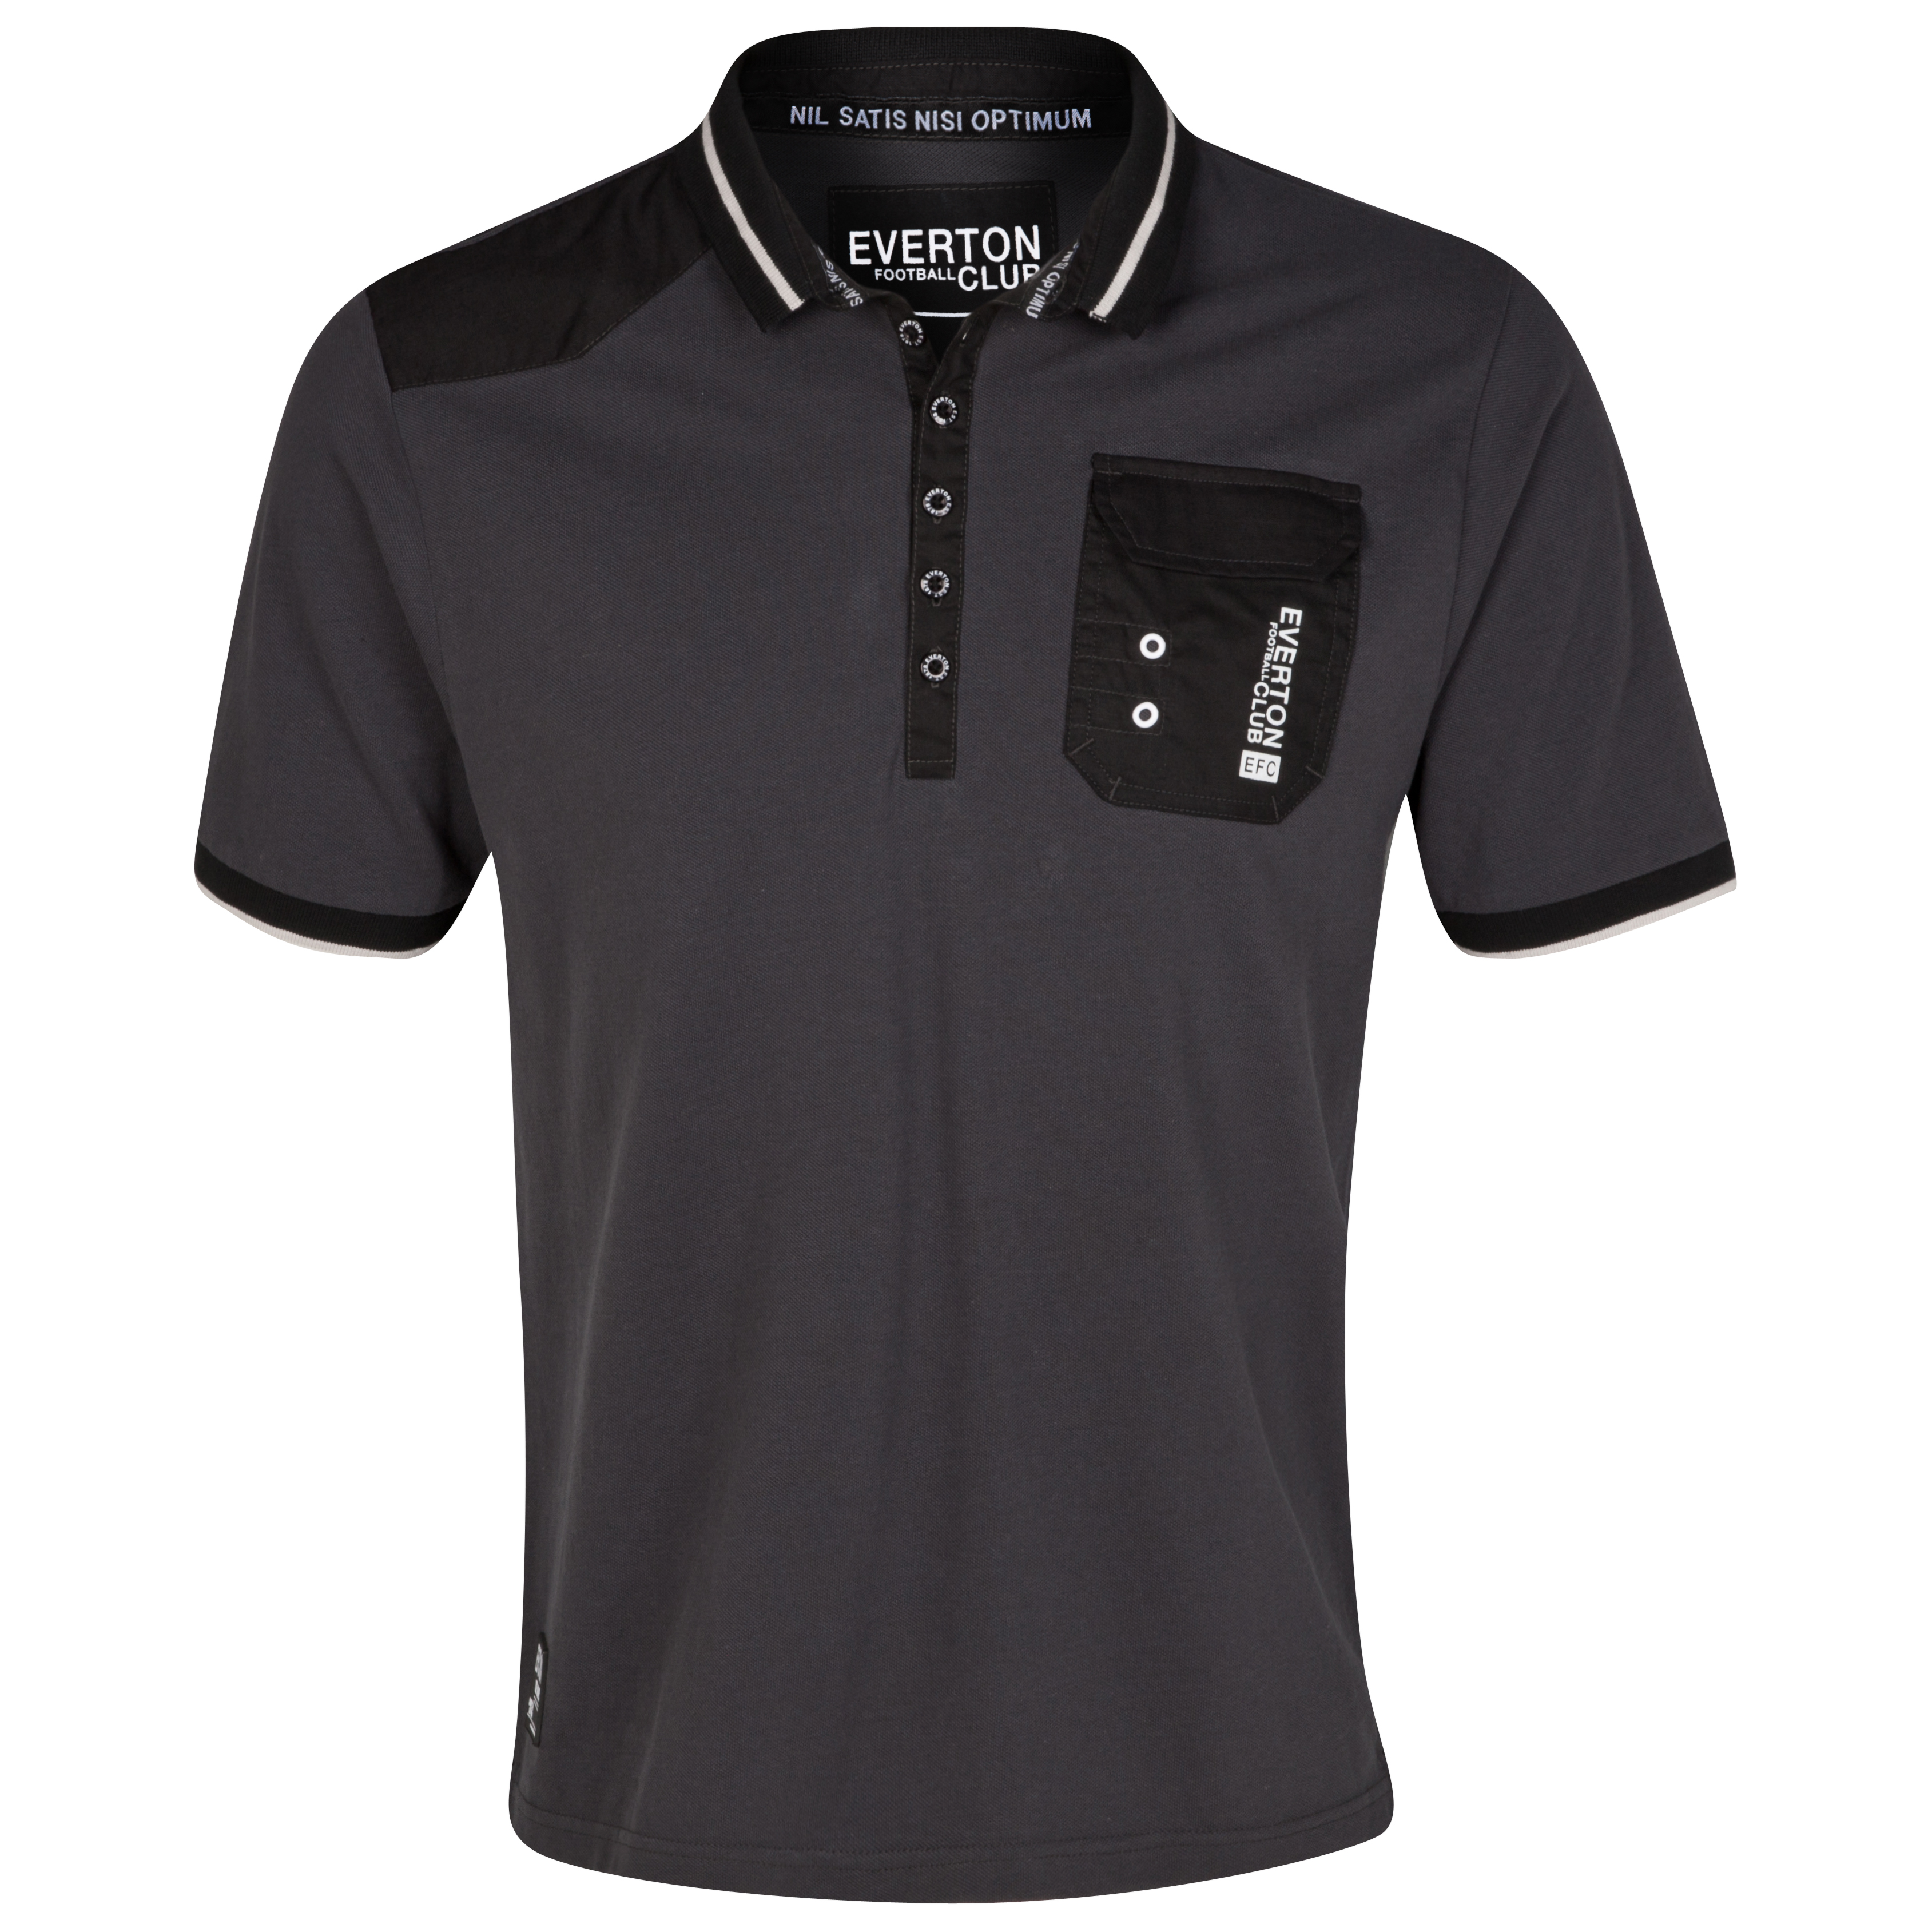 Everton Patch Polo Top - Charcoal - Older Boys